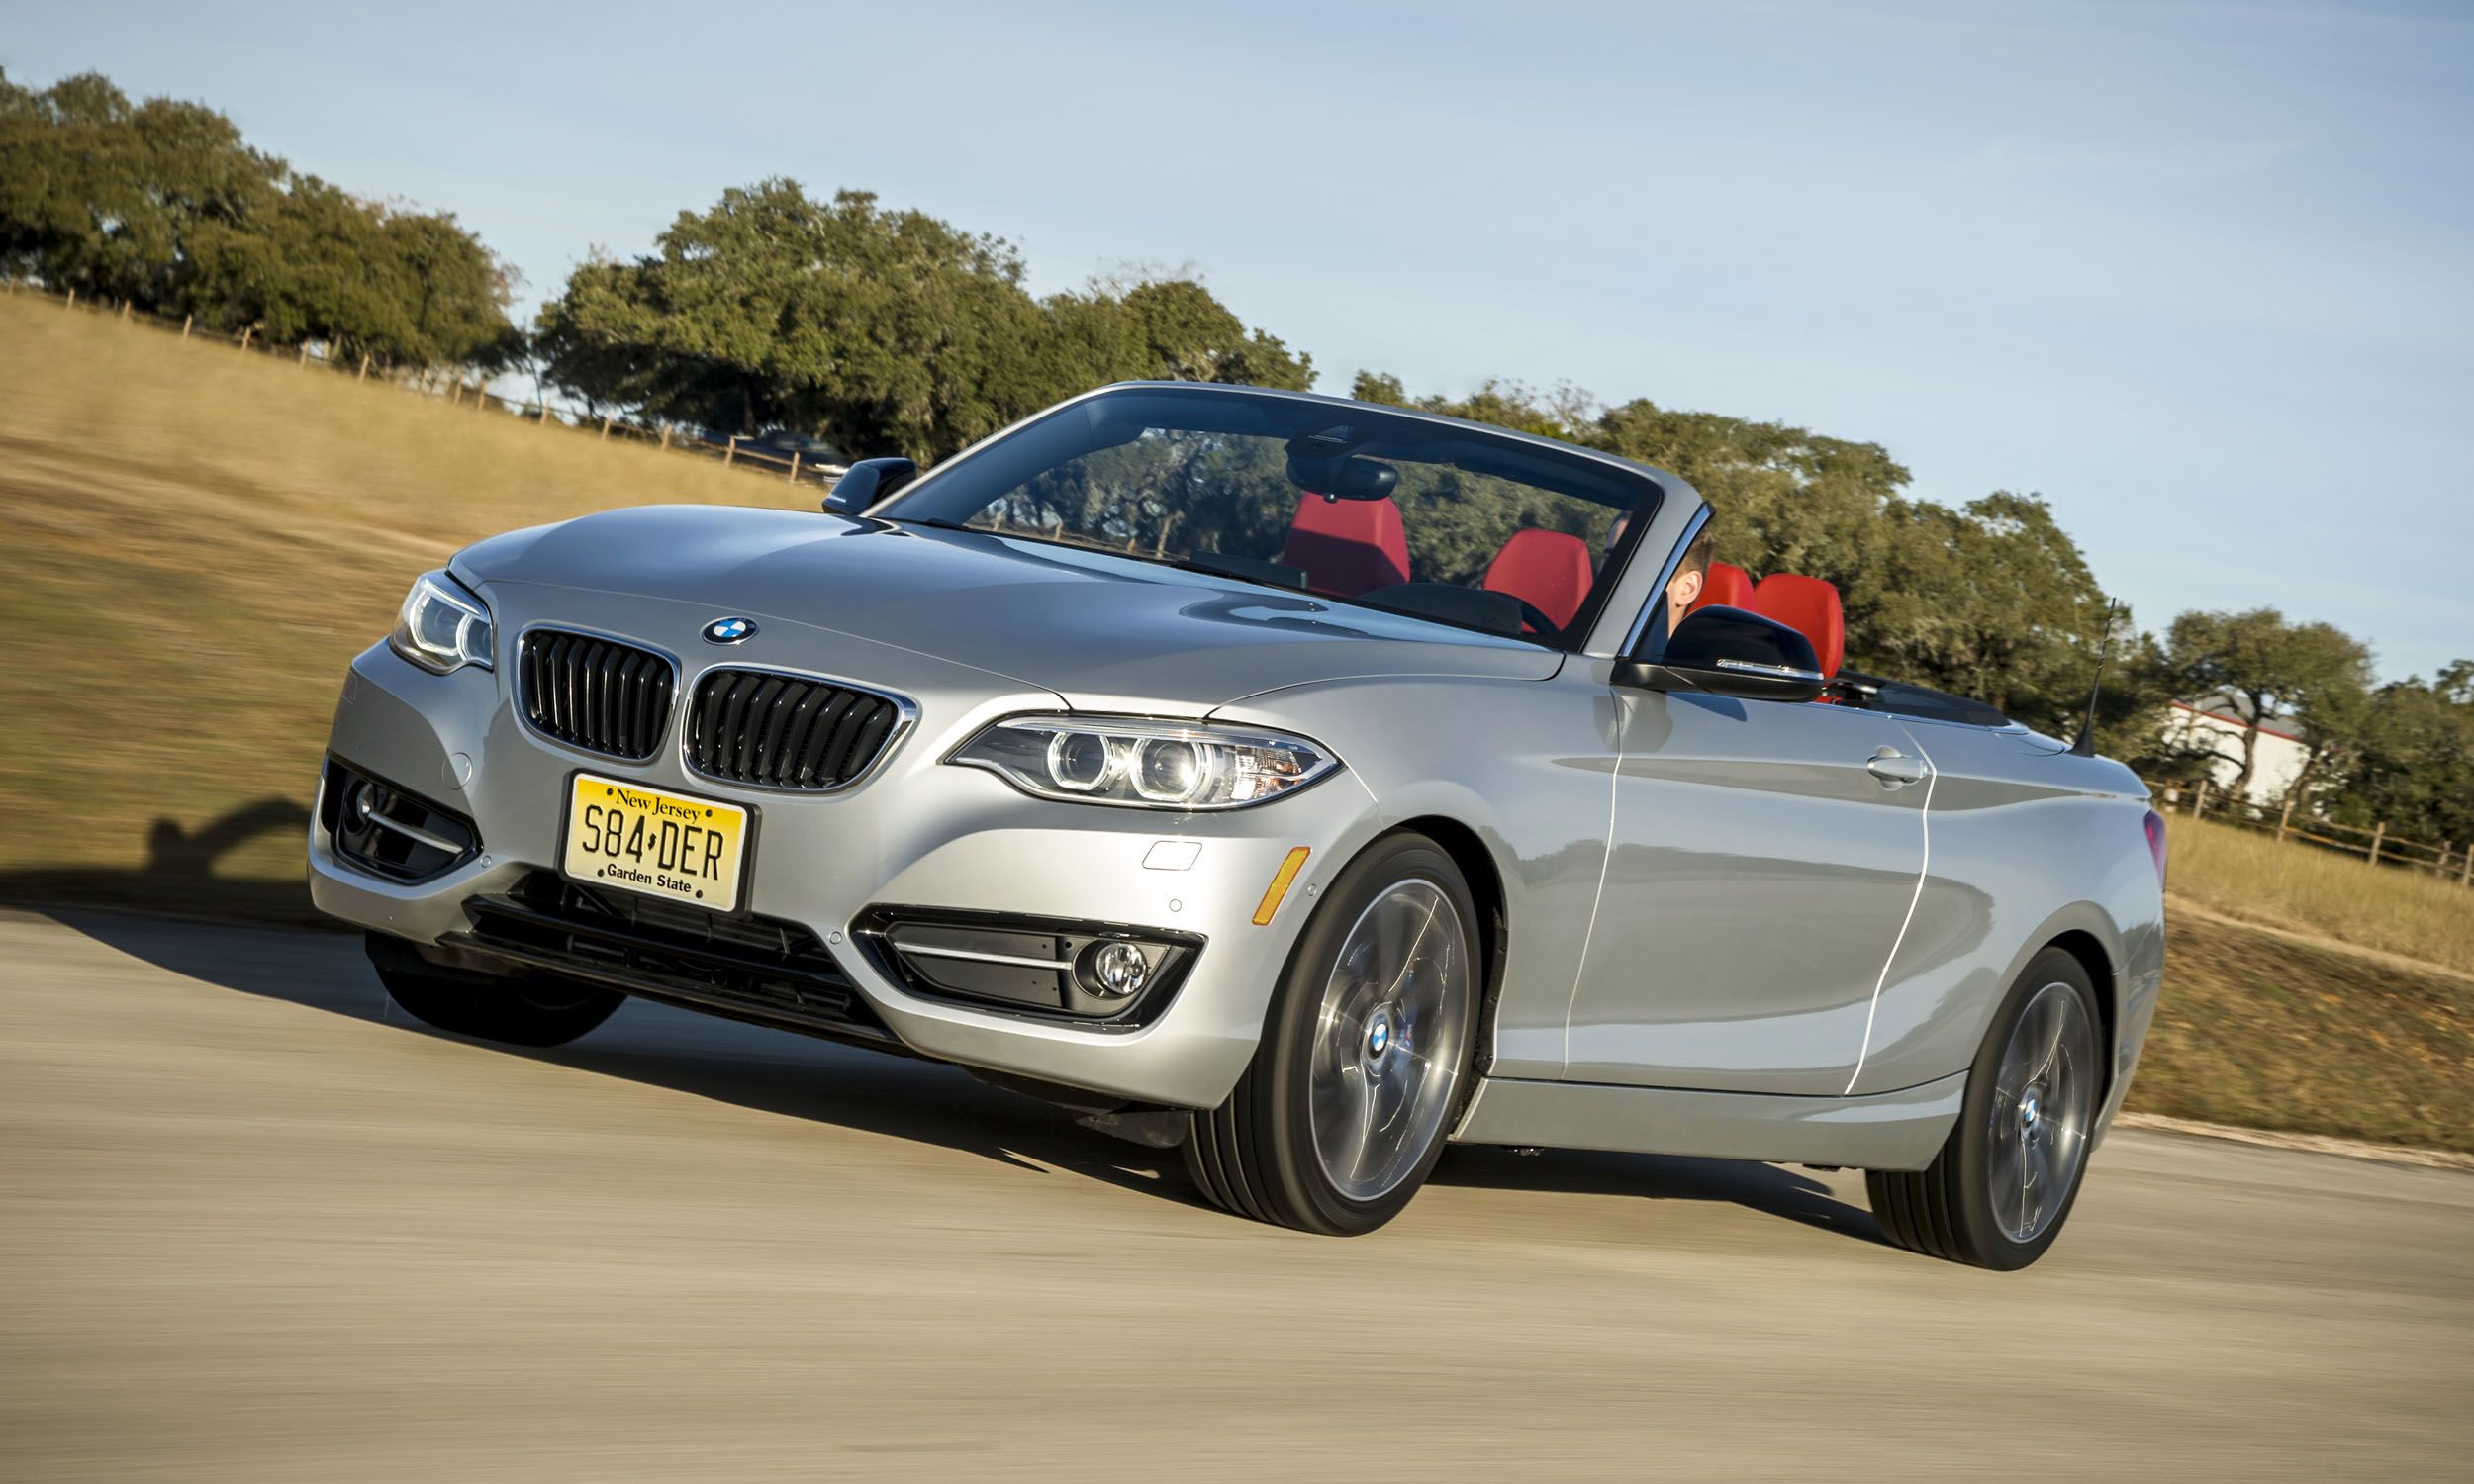 convertible shown series reviews convertibles bmw snapshot silver carsguide car review